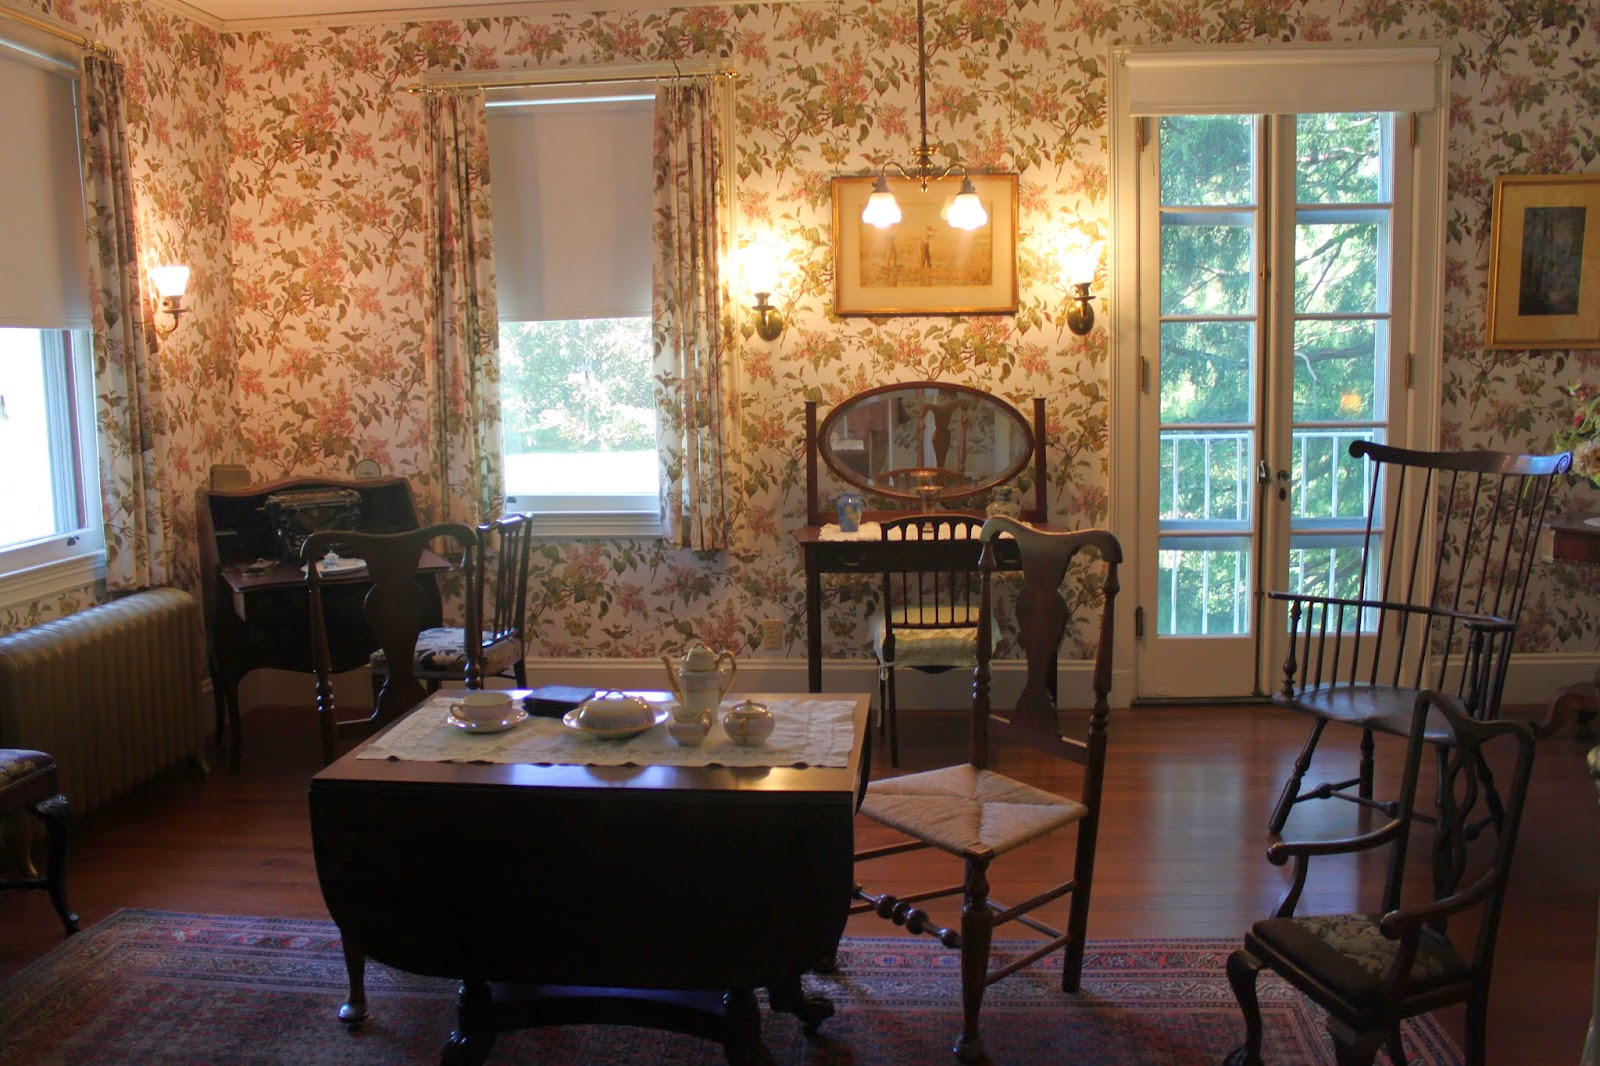 A Lady in Boston : Nearby: The Rooms of Blithewold Mansion